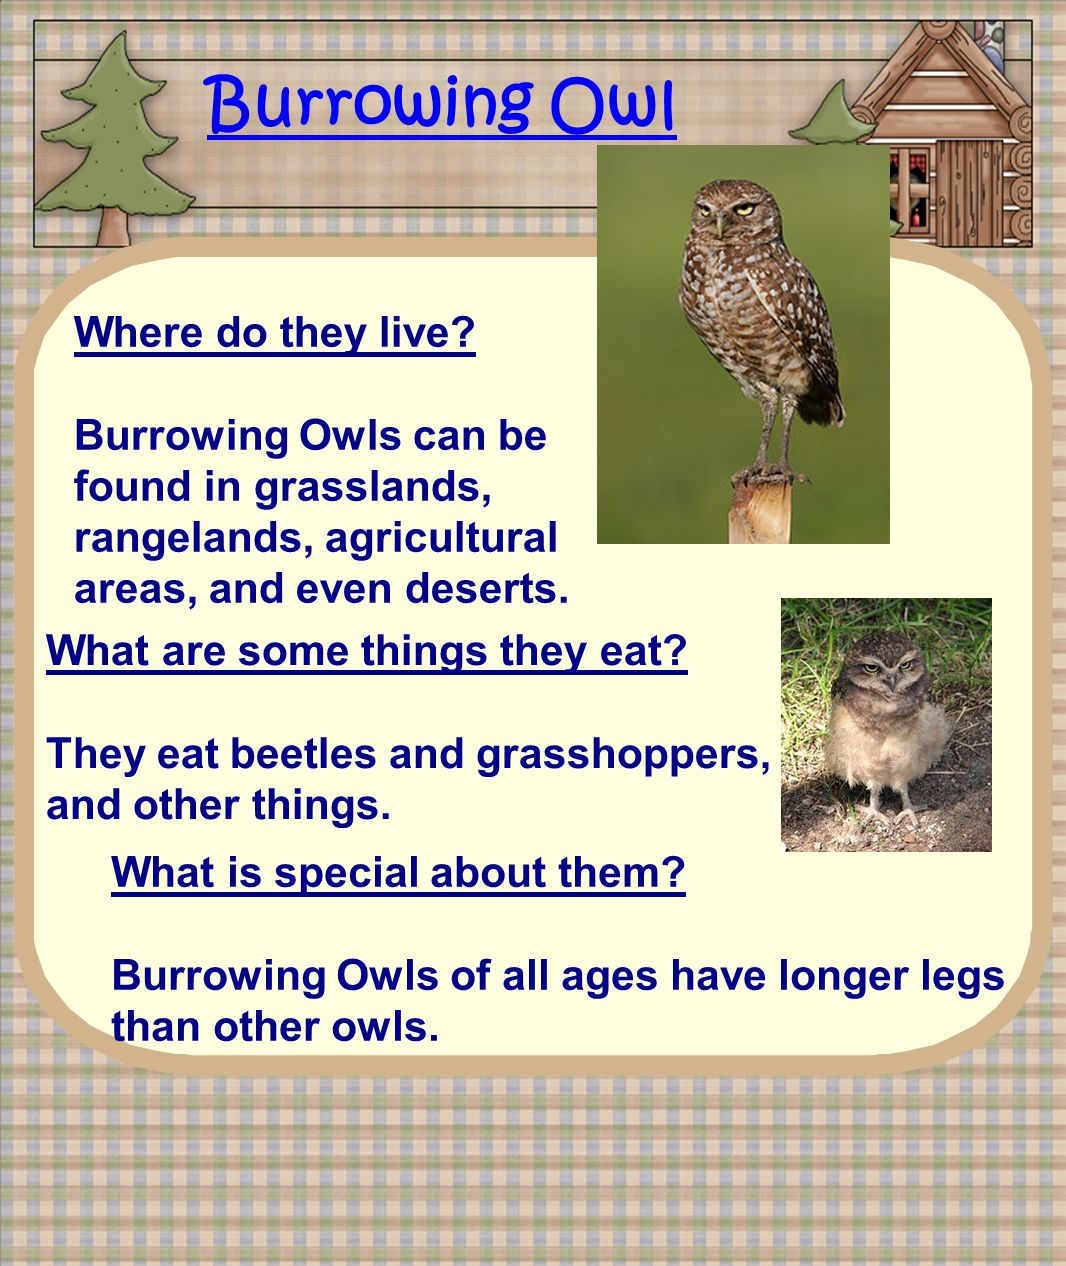 Burrowing Owl Where do they live.